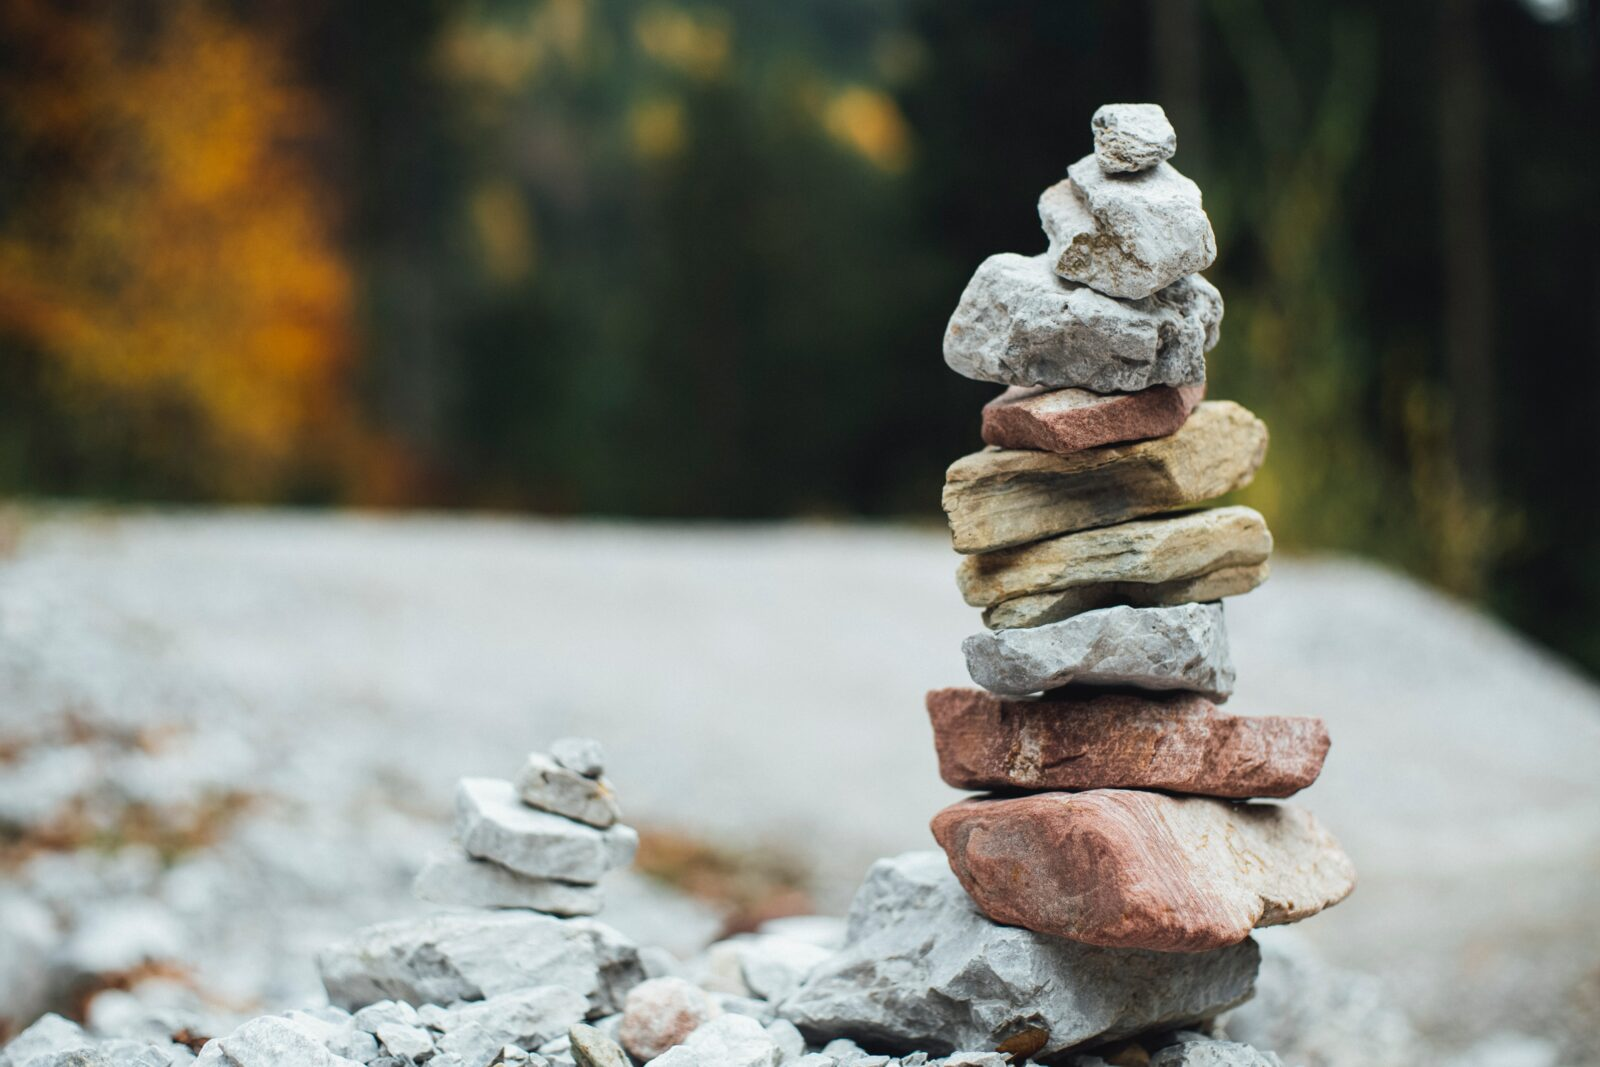 A pile of rocks sitting on one another demonstrating the value of balance while accepting the discomforts of life